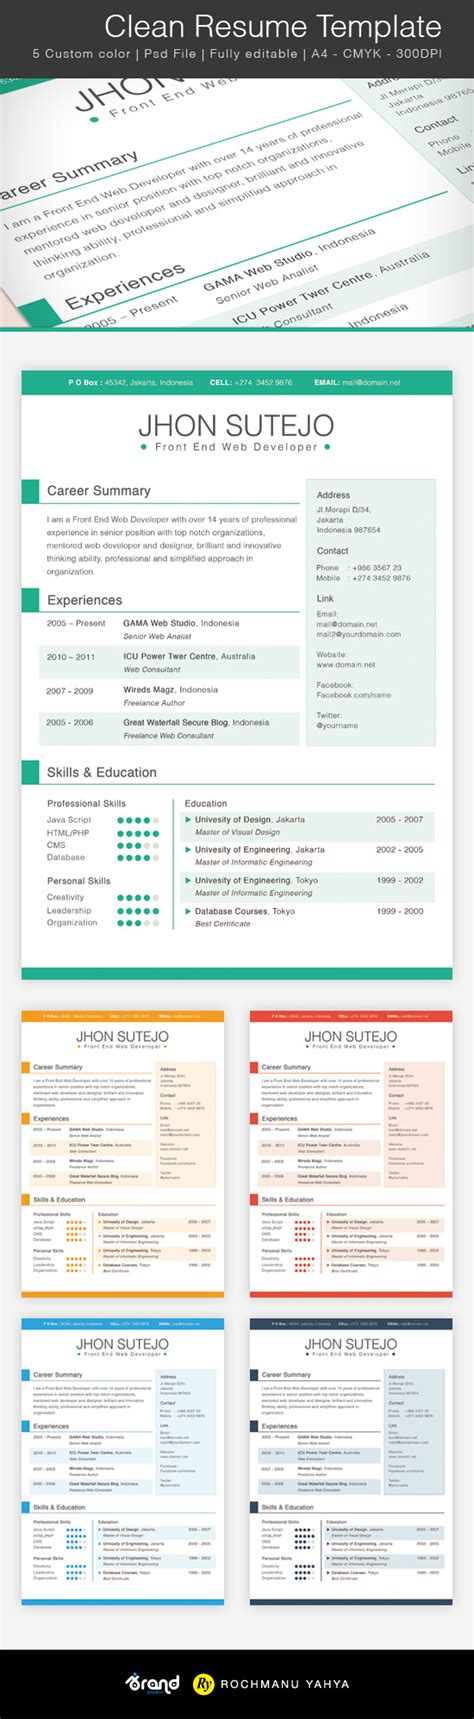 free clean resume template 5 colors